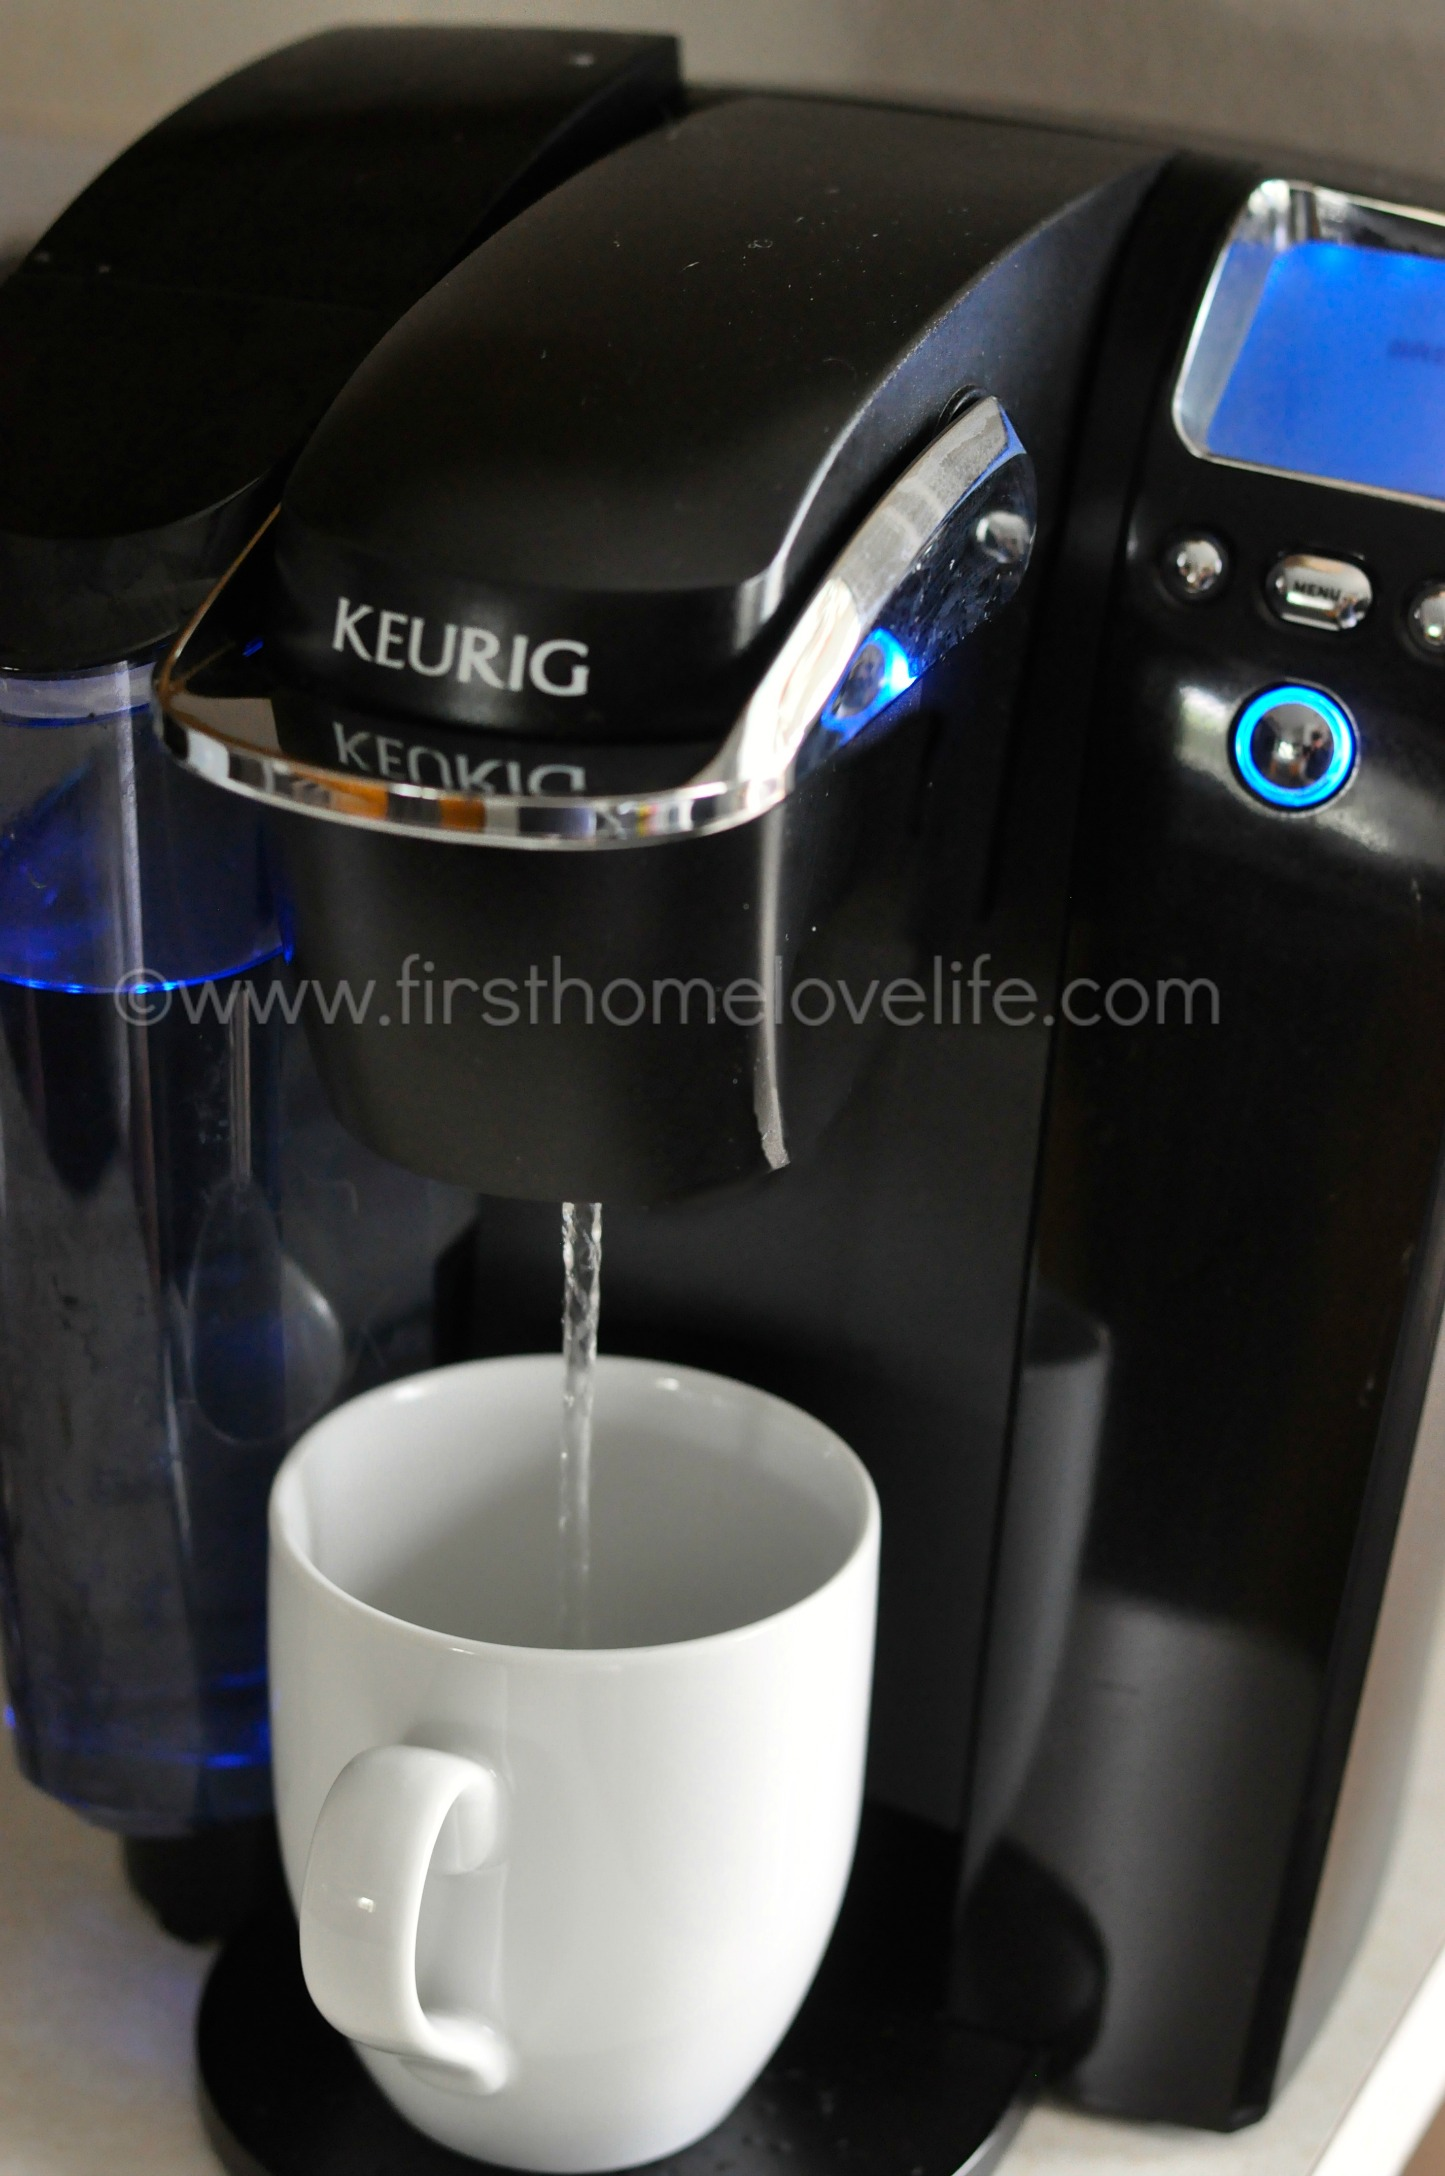 Keurig Coffee Maker Clogged : How to Clean a Clogged Keurig - First Home Love Life